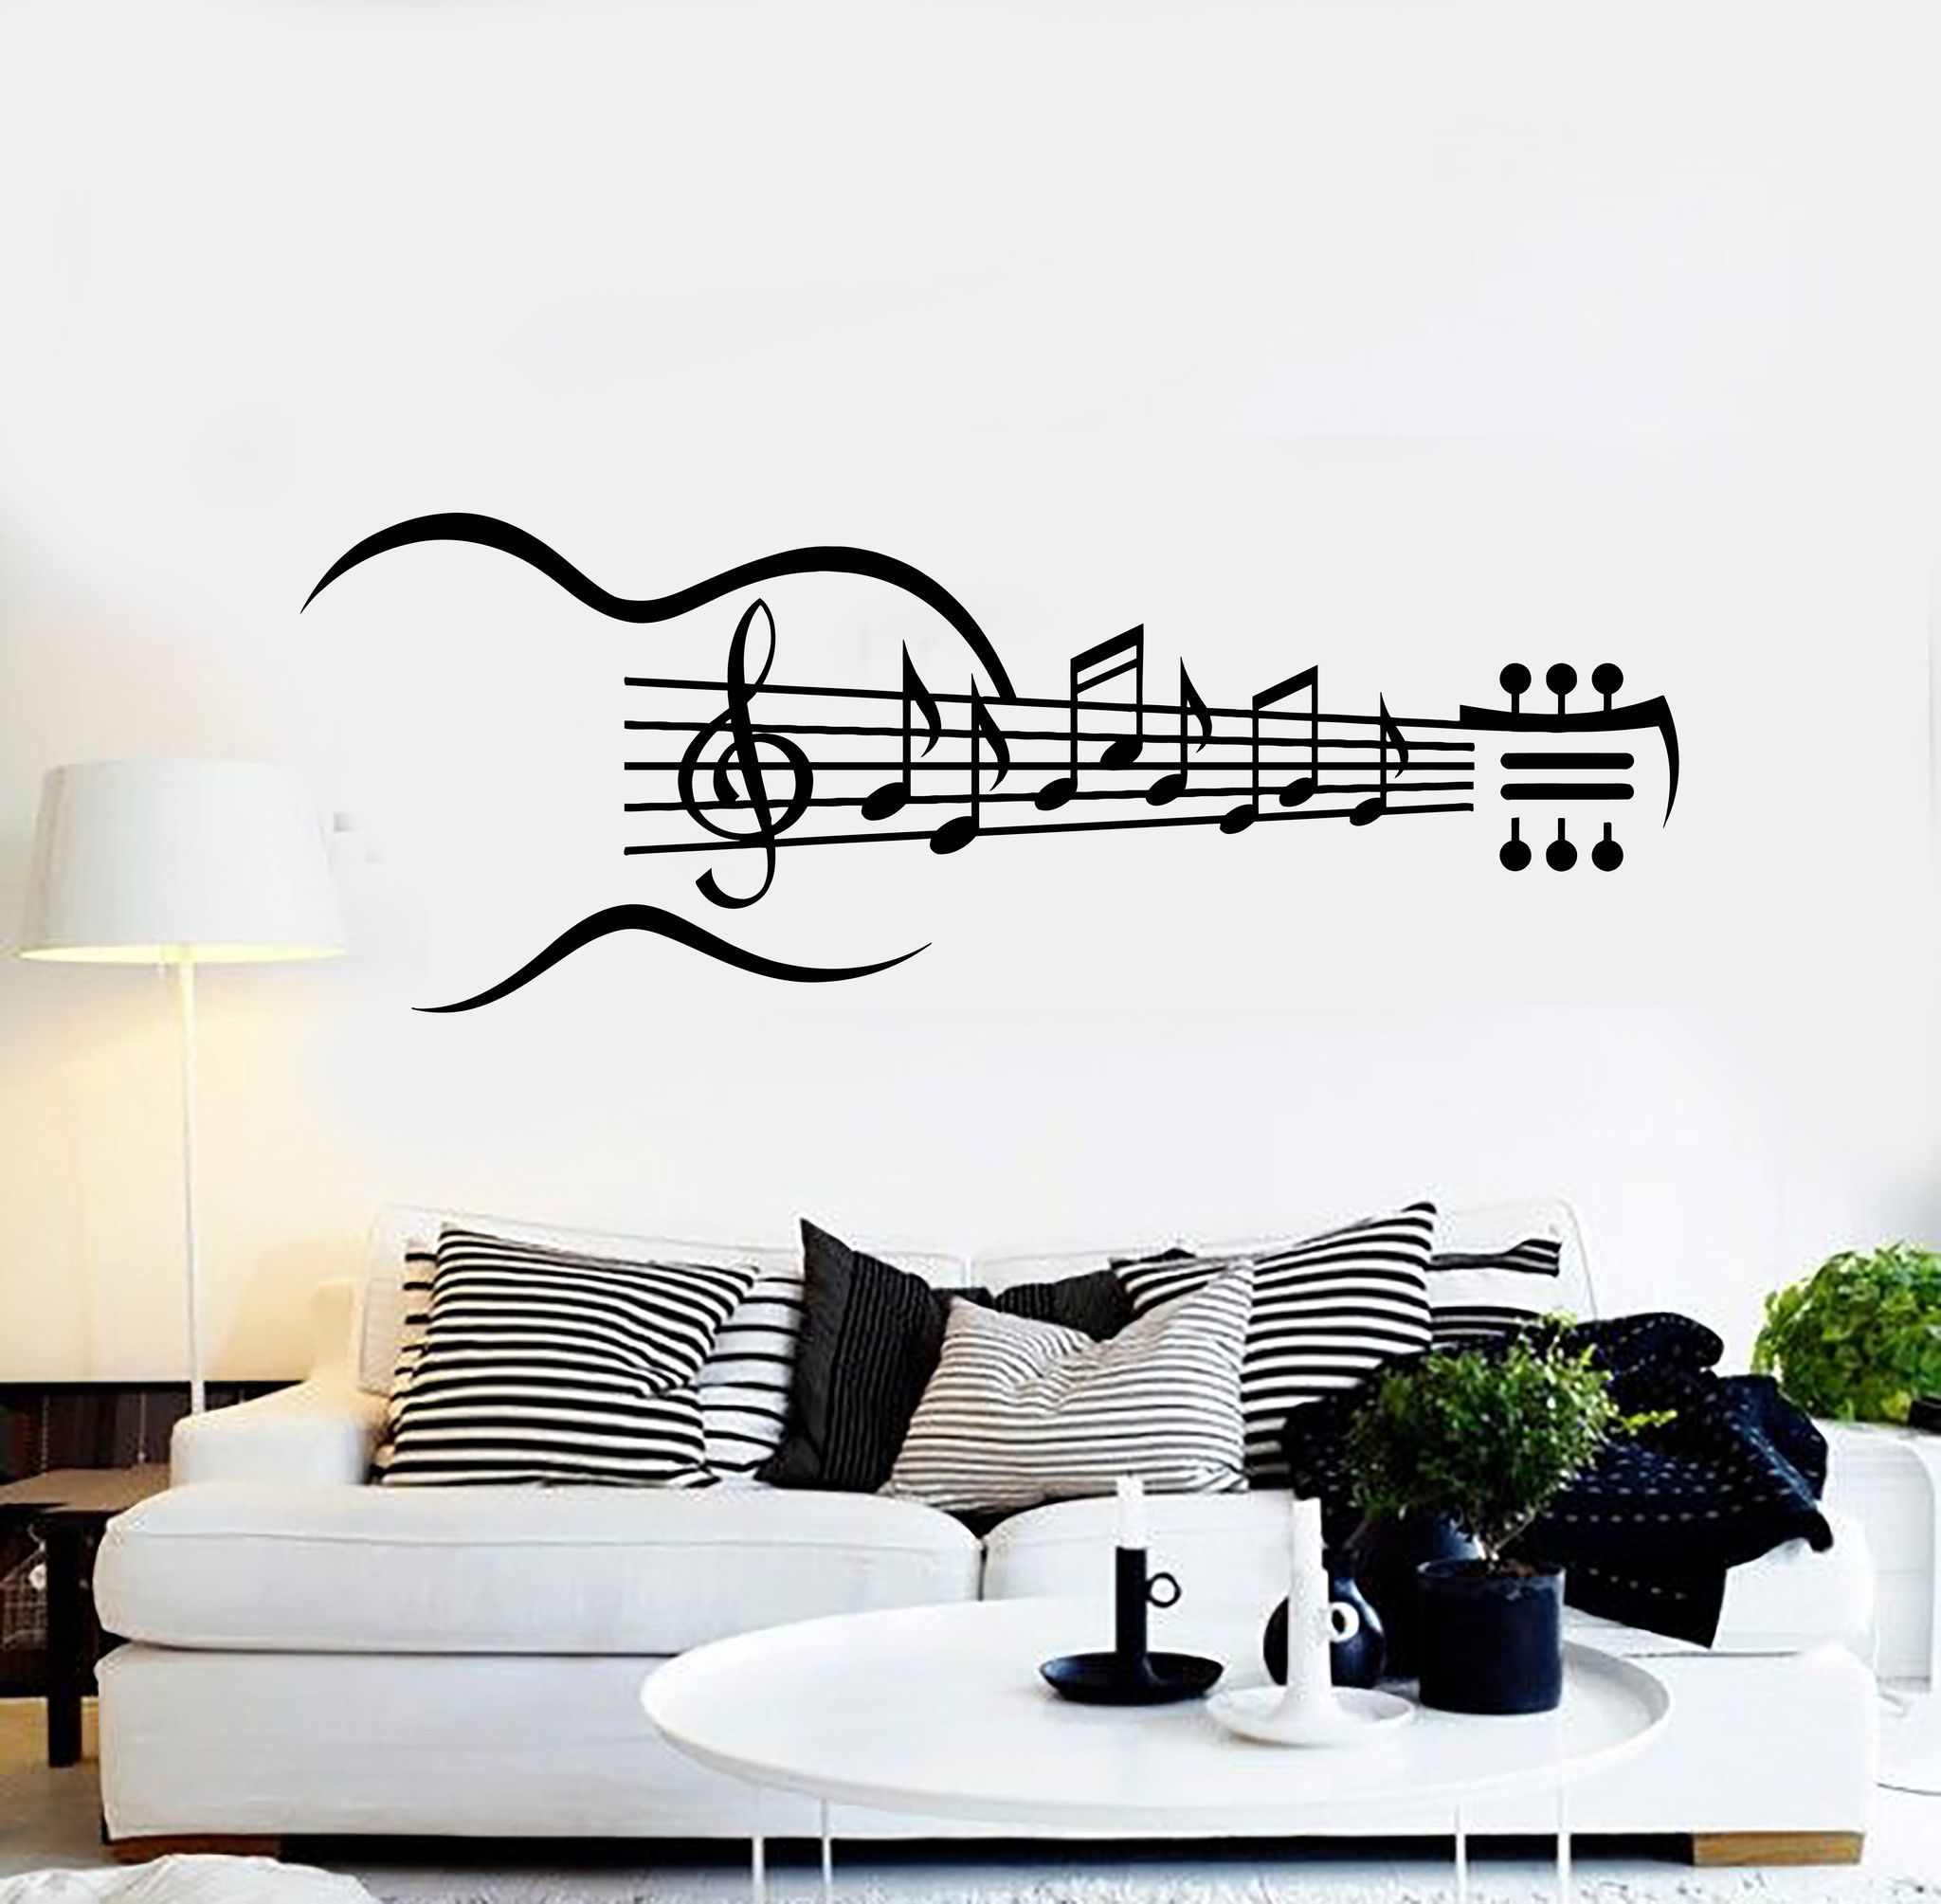 Art Mural Wall Music Musical Sticker Notes Removable Decal Room Home Decor DIY